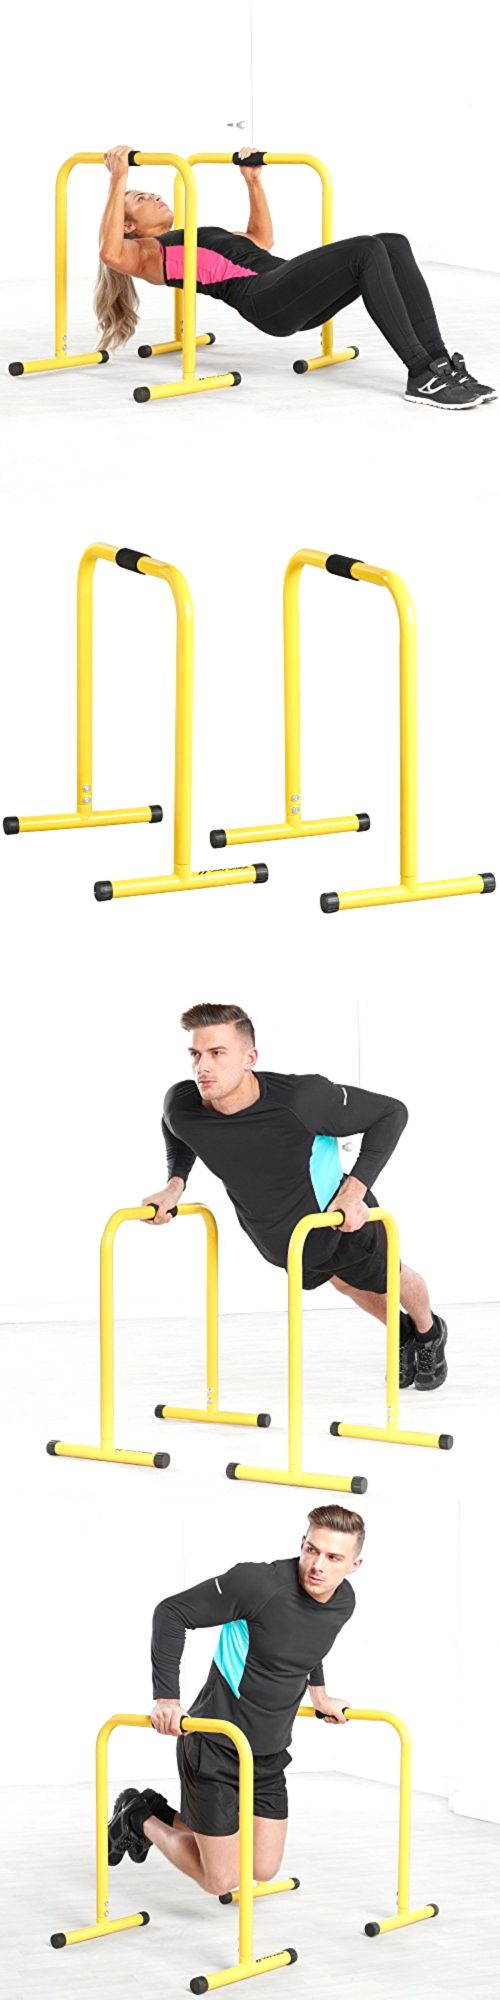 Pull Up Bars 179816: Parallel Fitness Bars Dip Stands, Gymnastics, Crossfit Mma Body Weight Training -> BUY IT NOW ONLY: $104.28 on eBay!